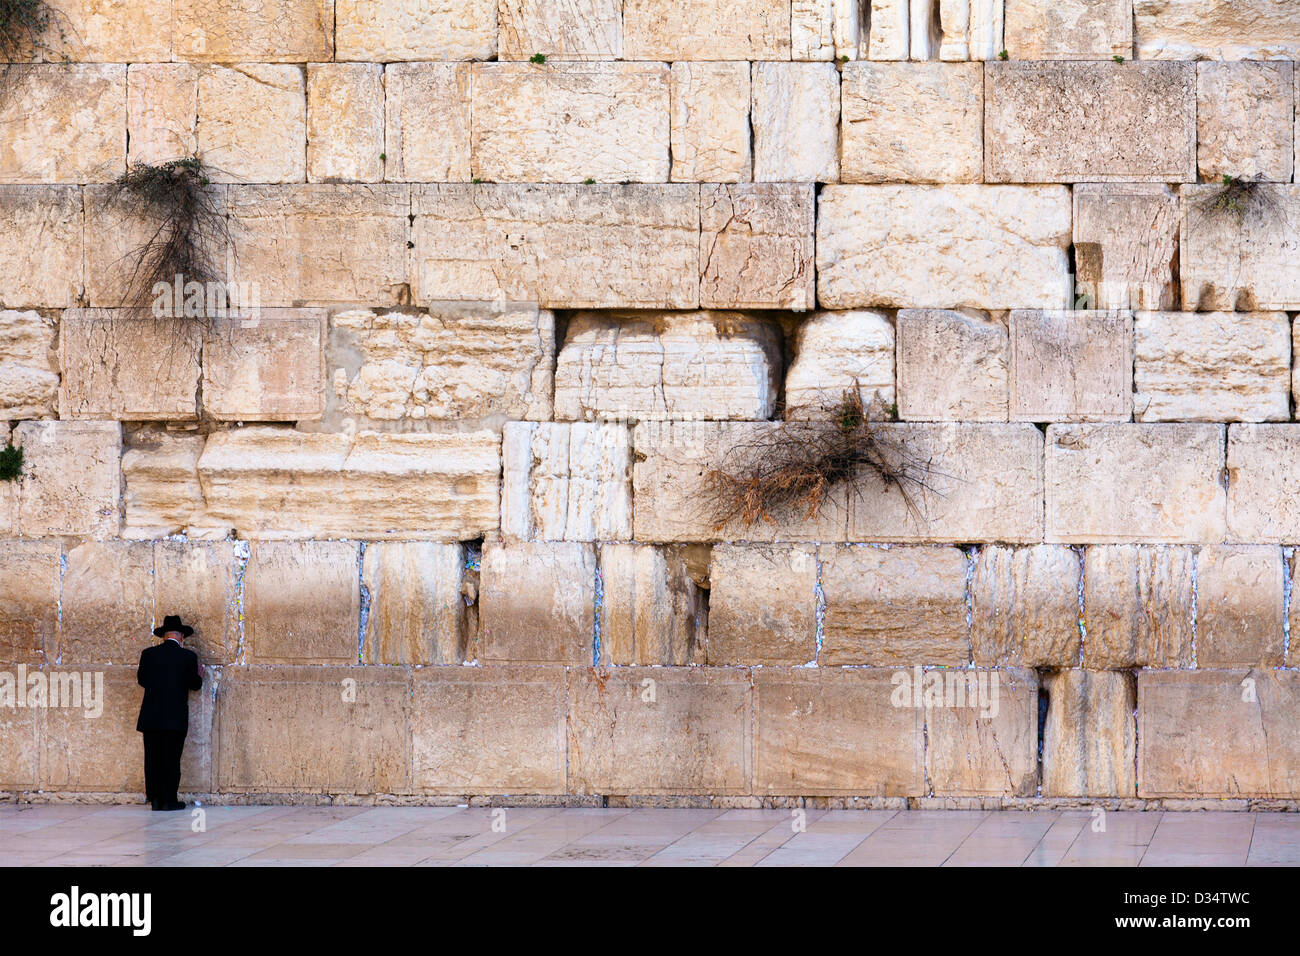 view of the Jerusalem wailing wall, Israel - Stock Image